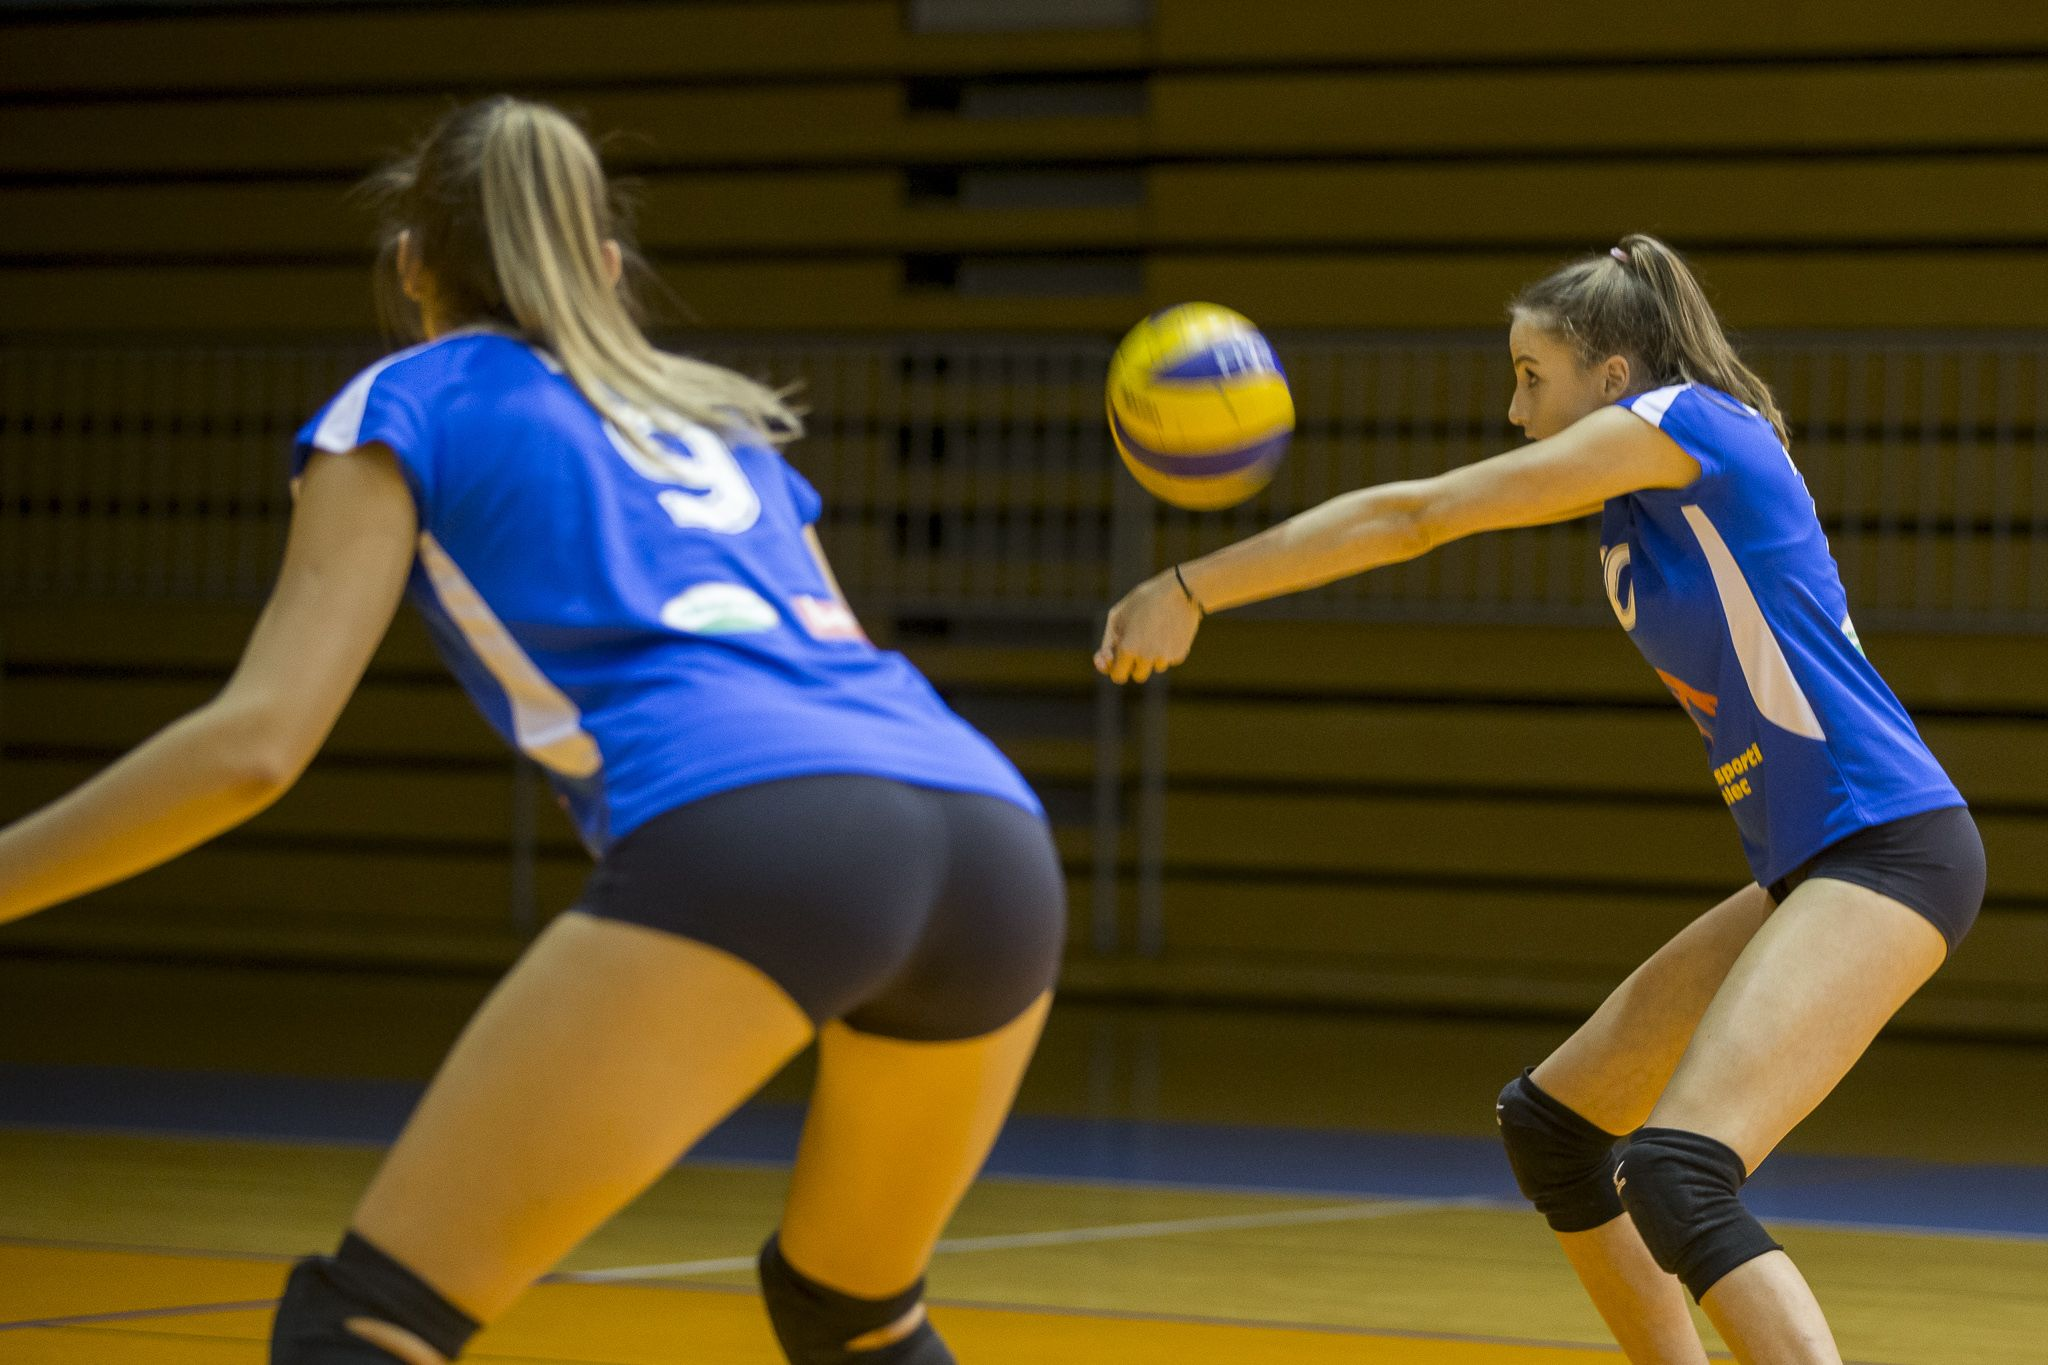 Can You Wear Volleyball Shorts During Your Period Volleyball Shorts Fitness Models Female Volleyball